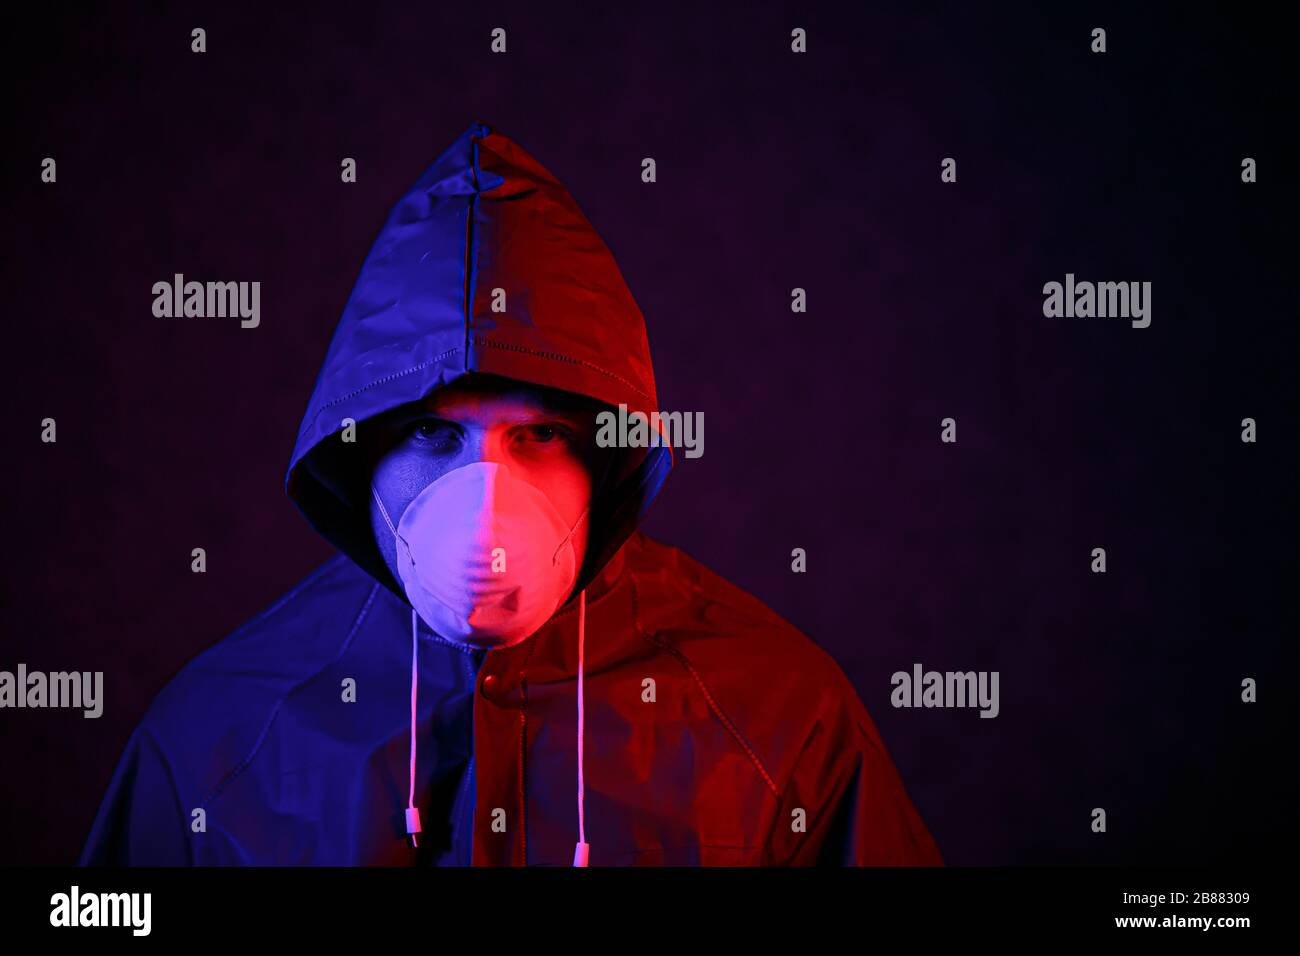 Coronavirus. A man in a mask and chemical protection suit in red and blue light. Fight against the virus Stock Photo